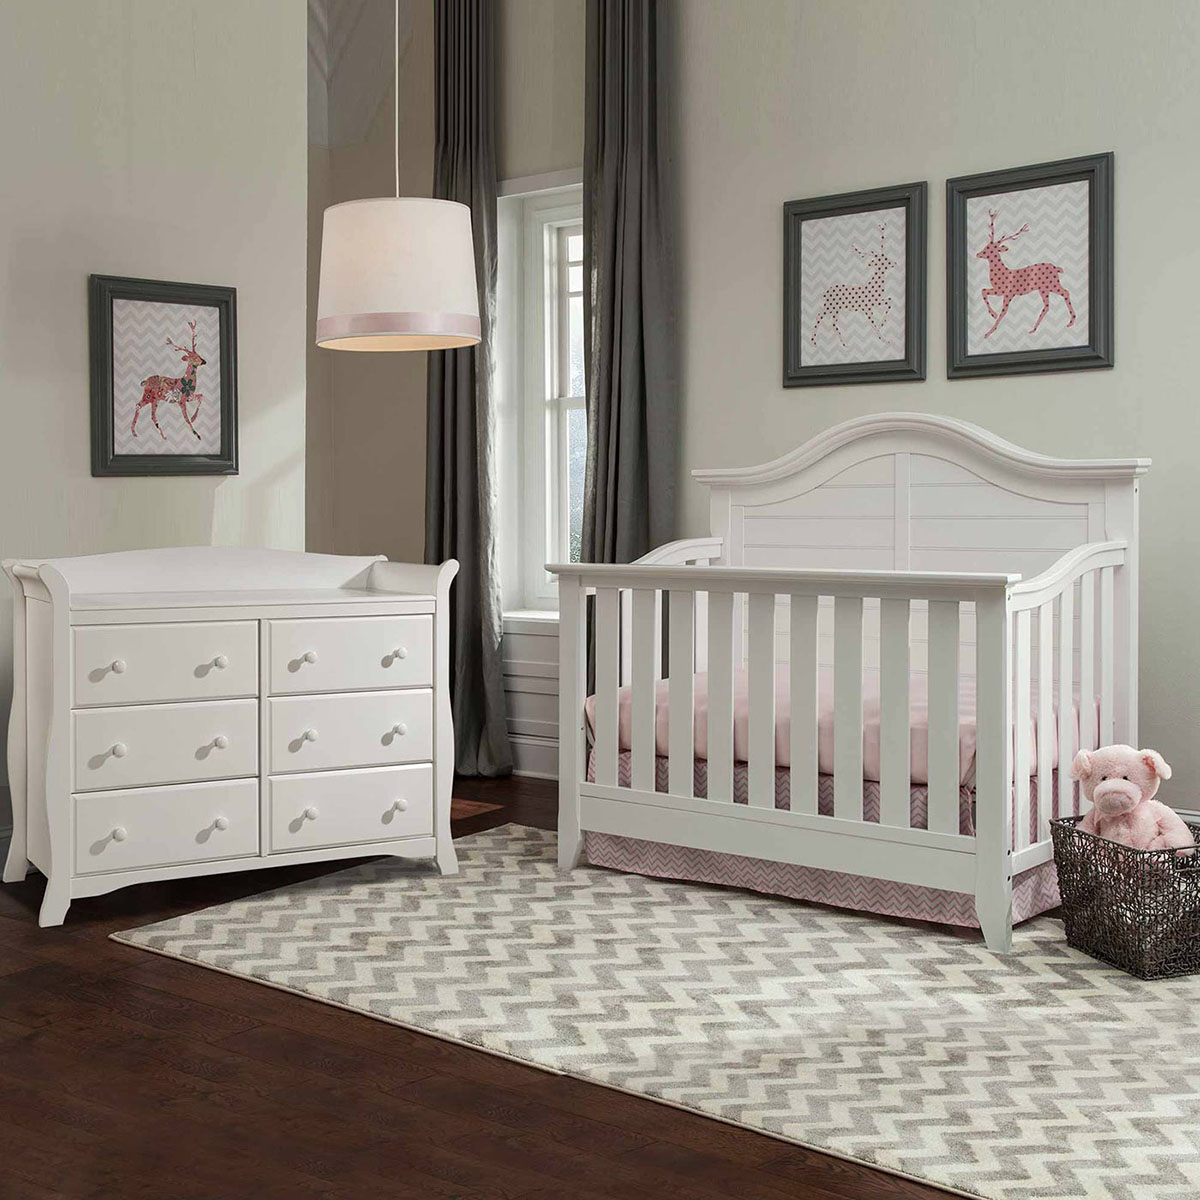 thomasville 2 piece nursery set southern dunes lifestyle crib and avalon 6 drawer dresser in white free shipping